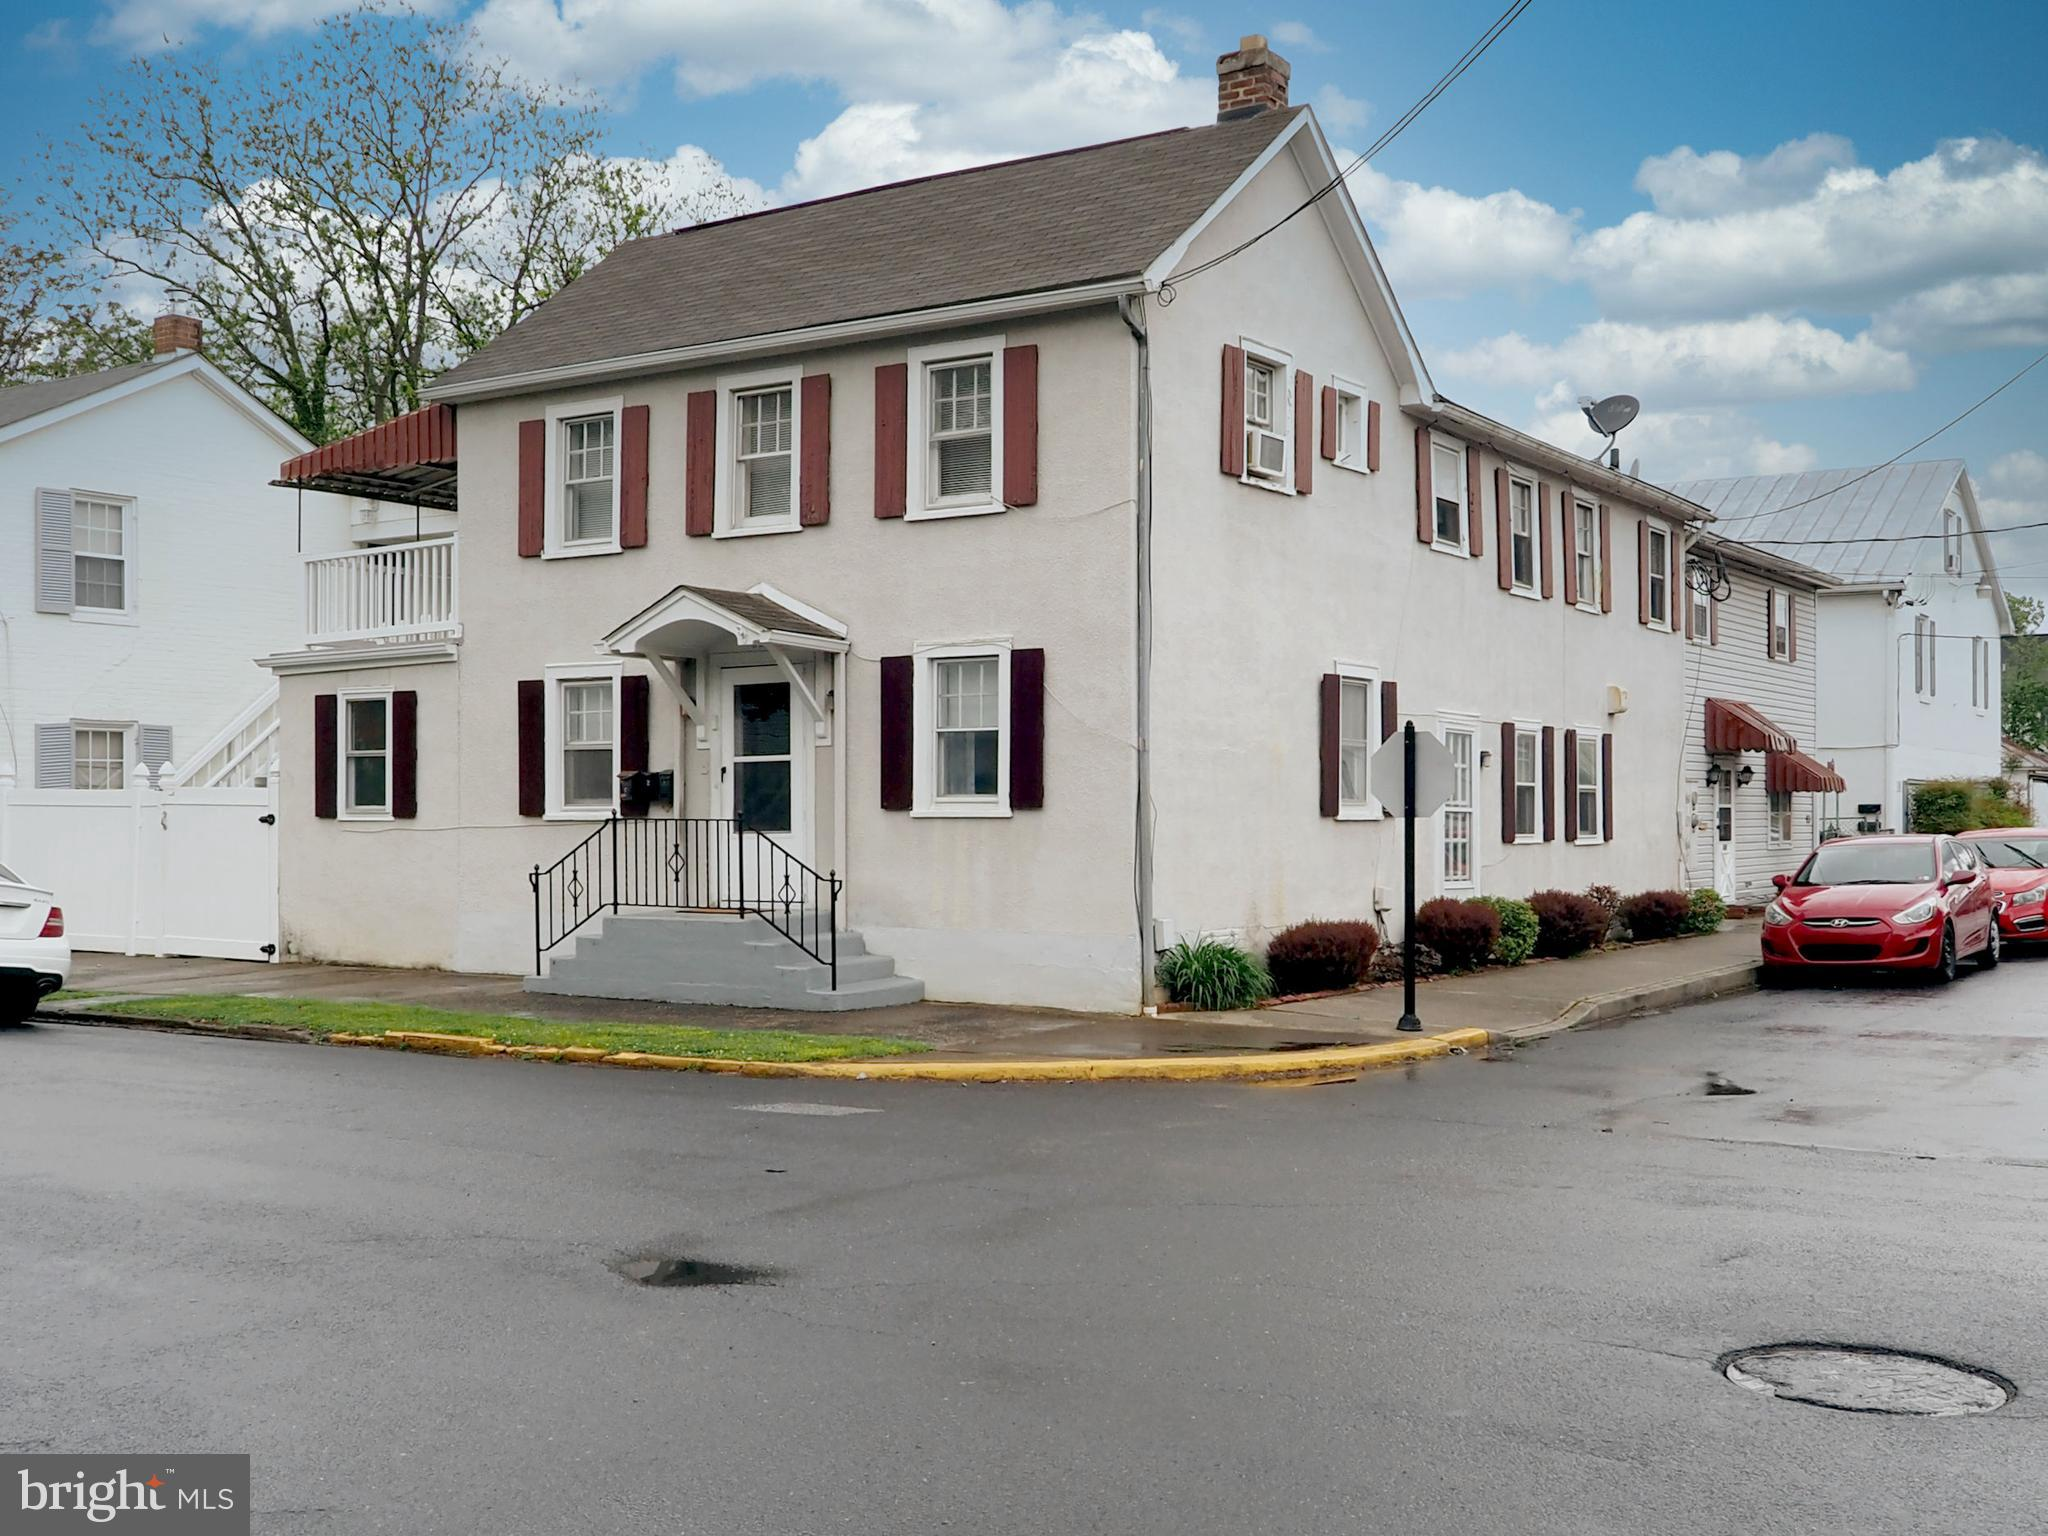 GREAT OPPORTUNITY IN CHARLES TOWN, WITHIN  WALKING DISTANCE TO THE RESTAURANTS, OLD OPERA HOUSE, AND